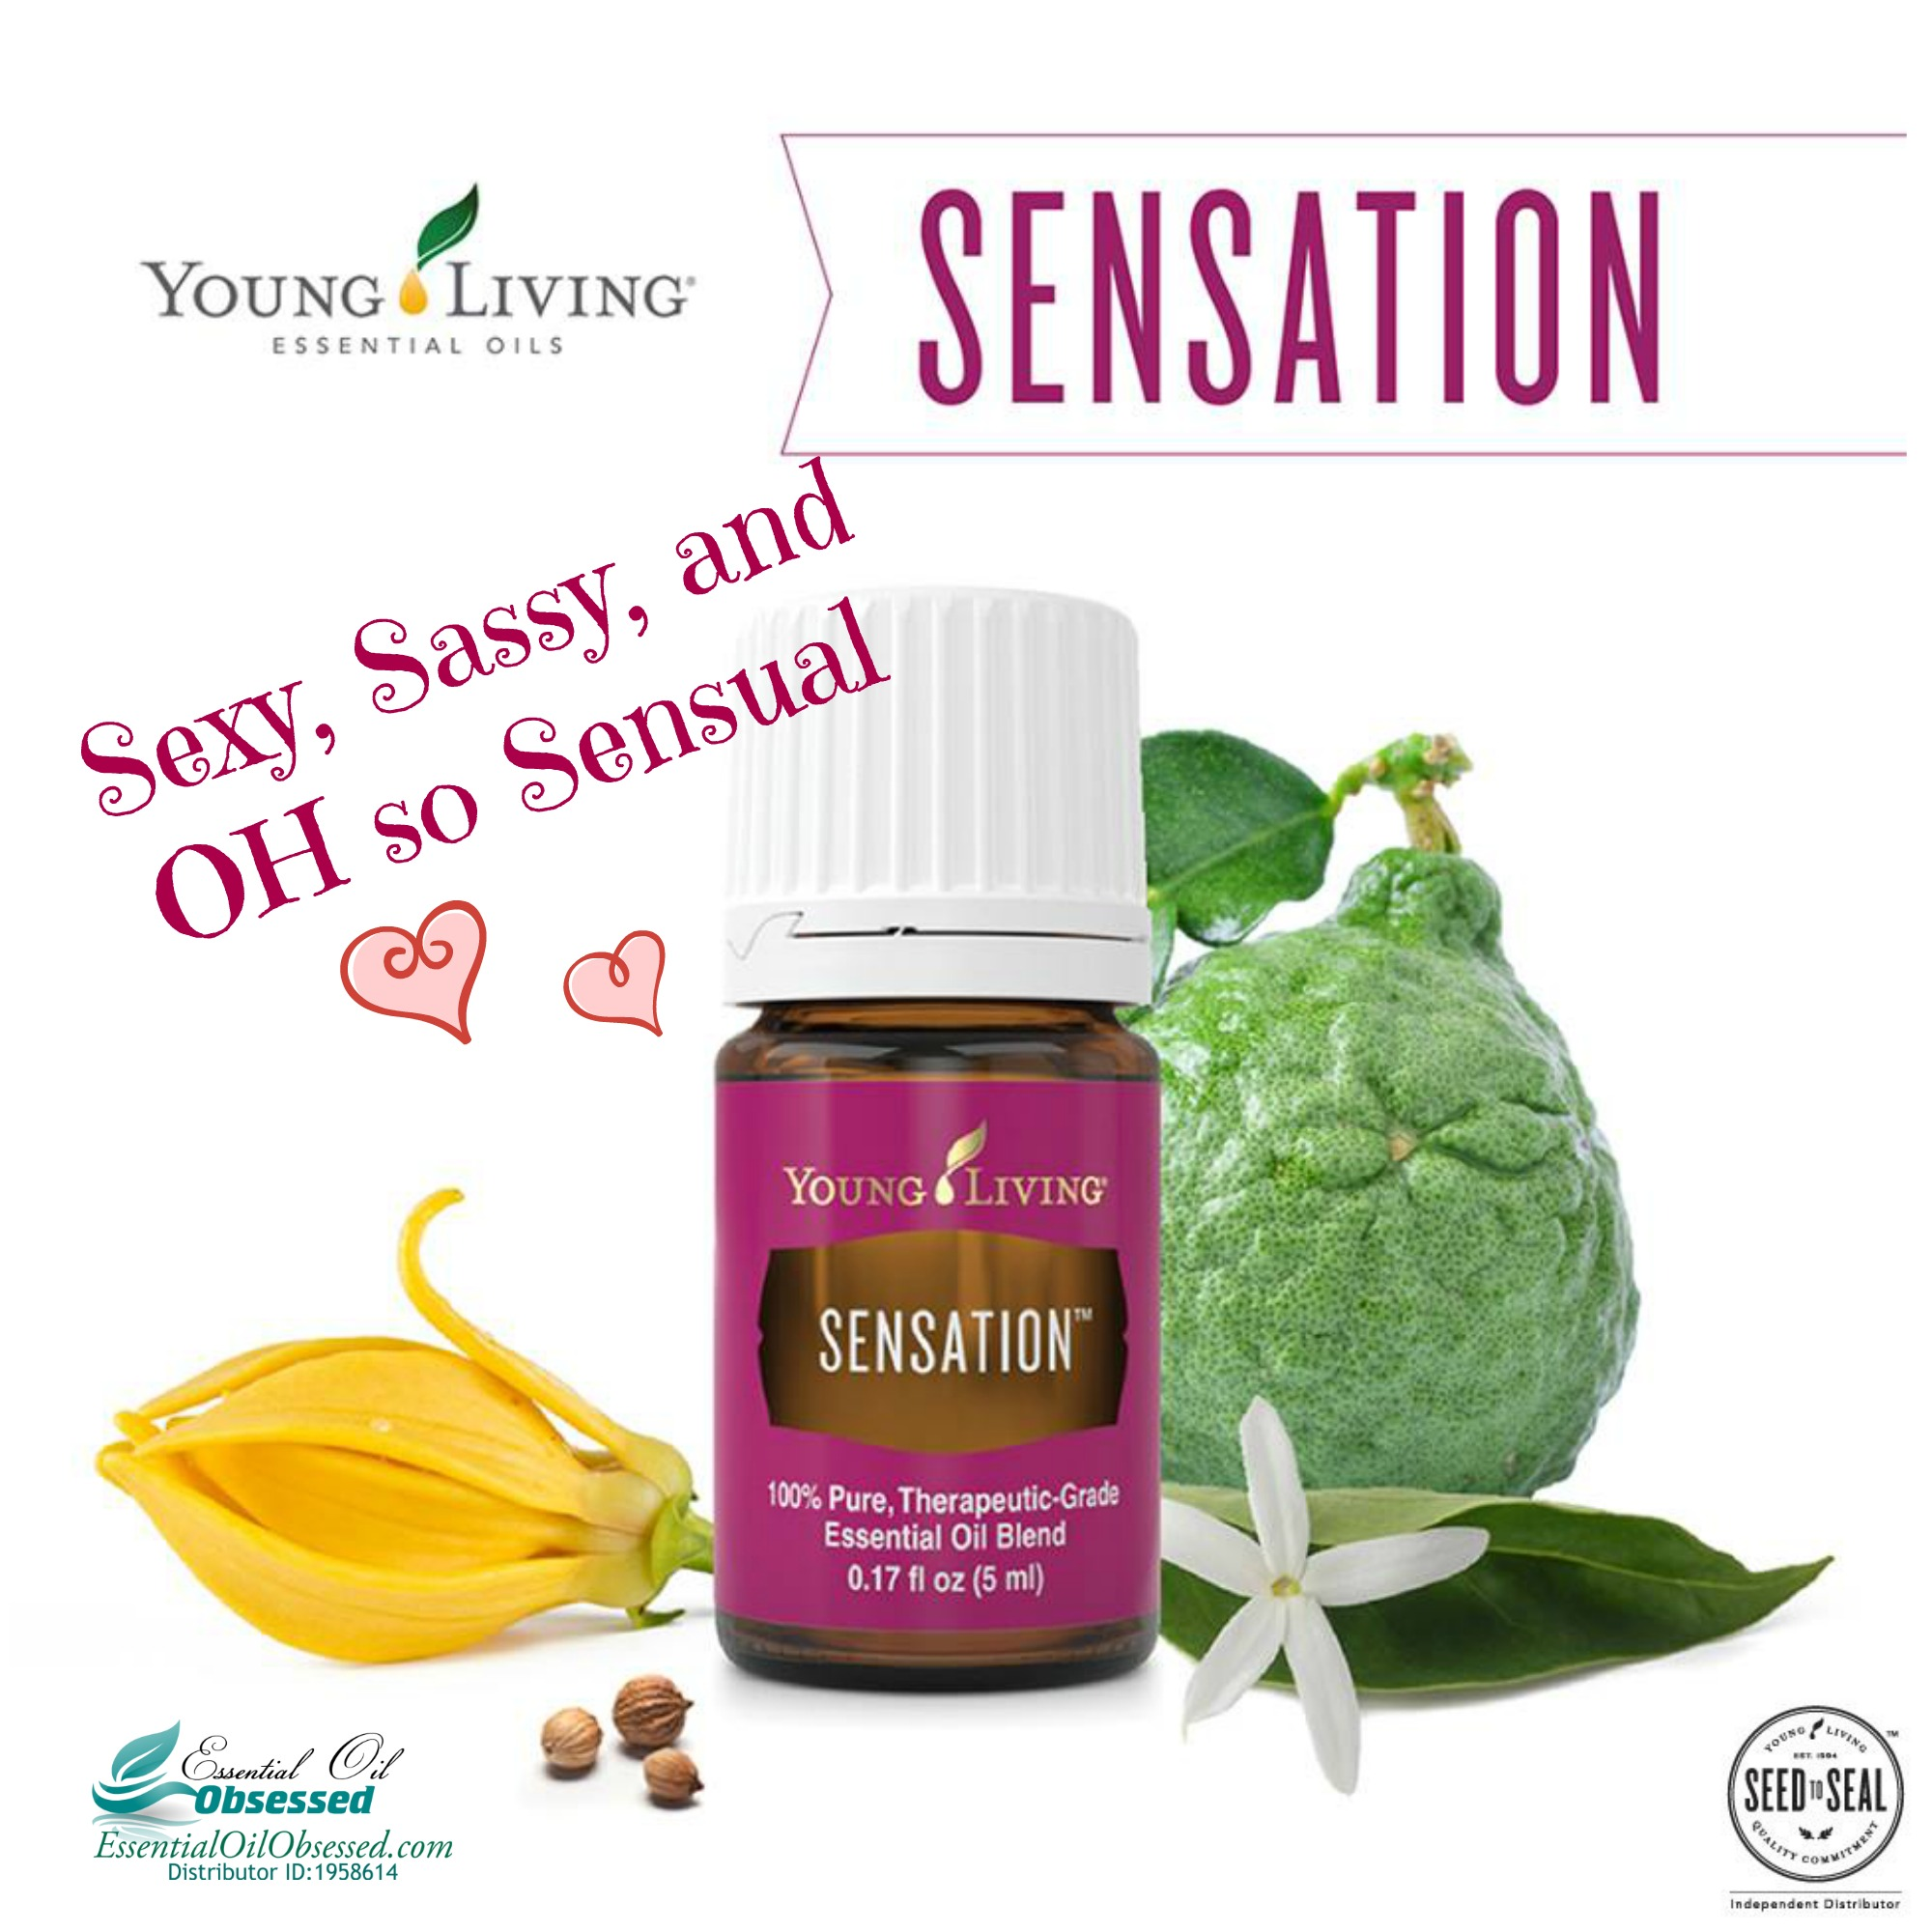 Sensation™ Essential Oil blend